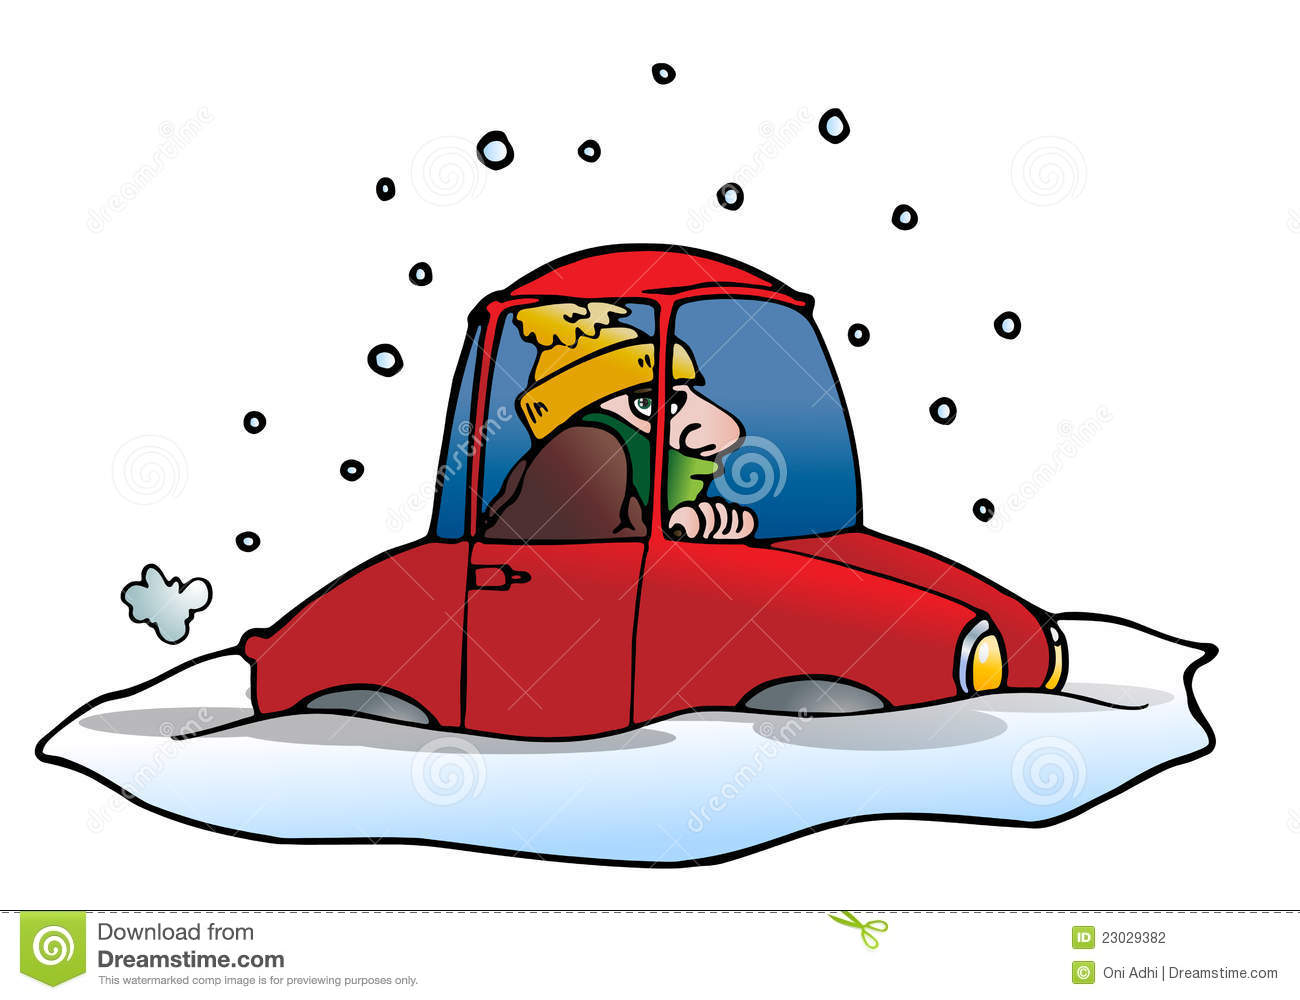 Car with snow car clipart banner black and white download Car with snow car clipart - ClipartFest banner black and white download